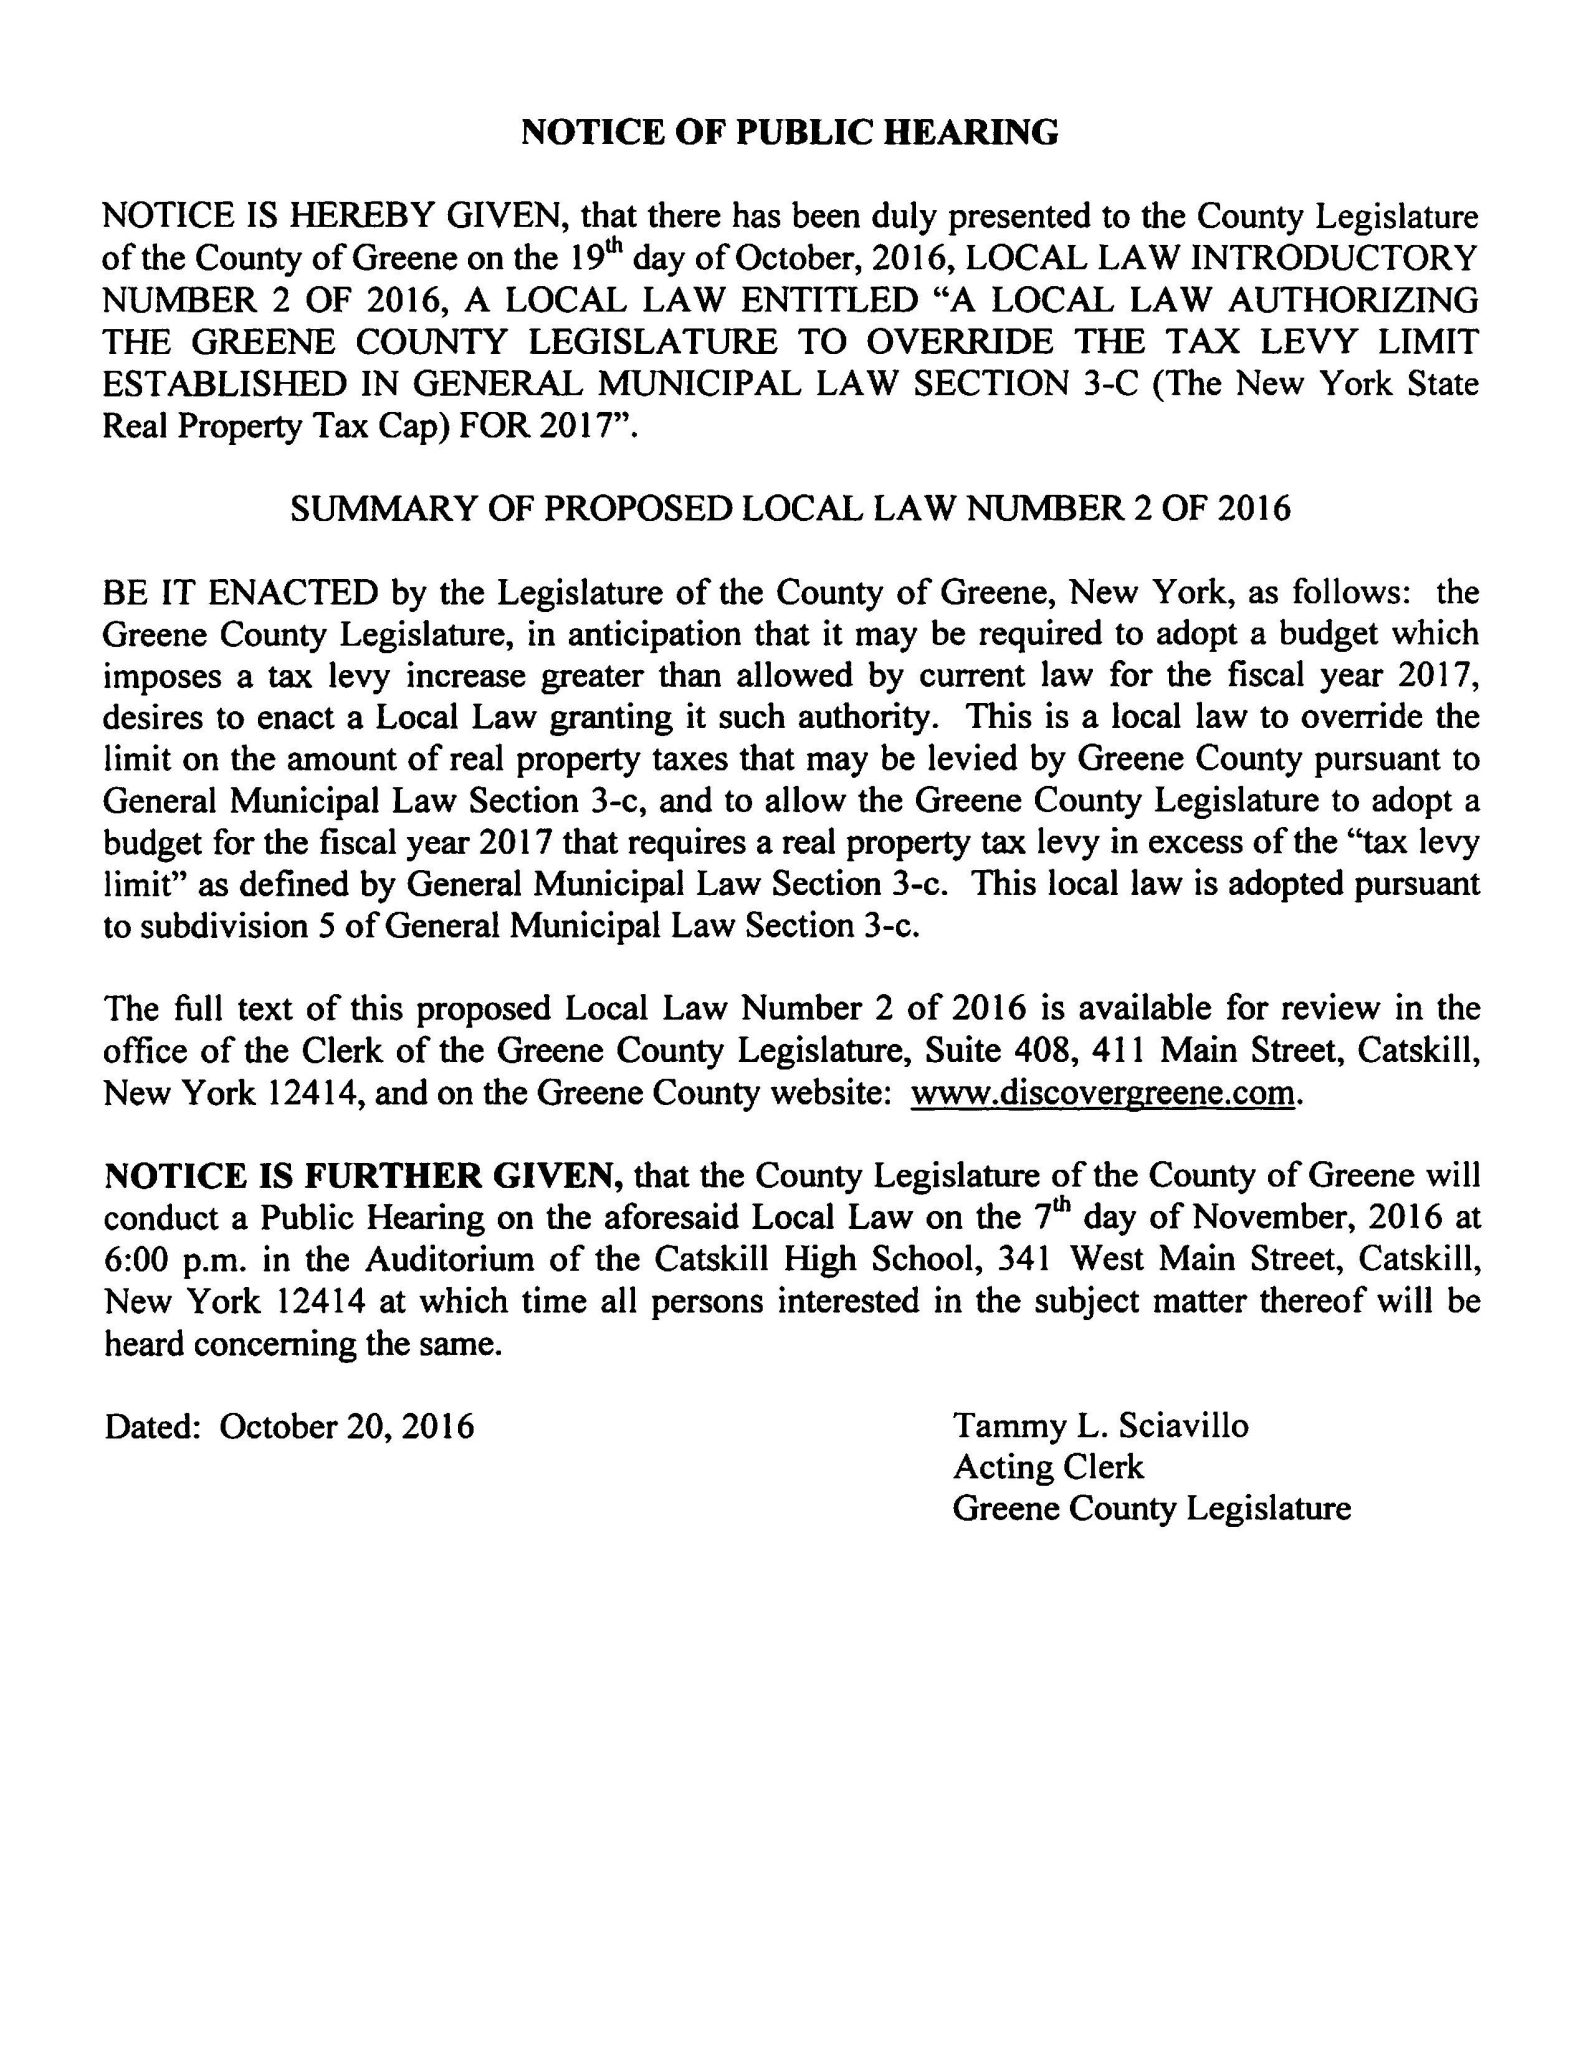 notice-of-public-hearing-local-law-no-2-of-2016-override-tax-levy